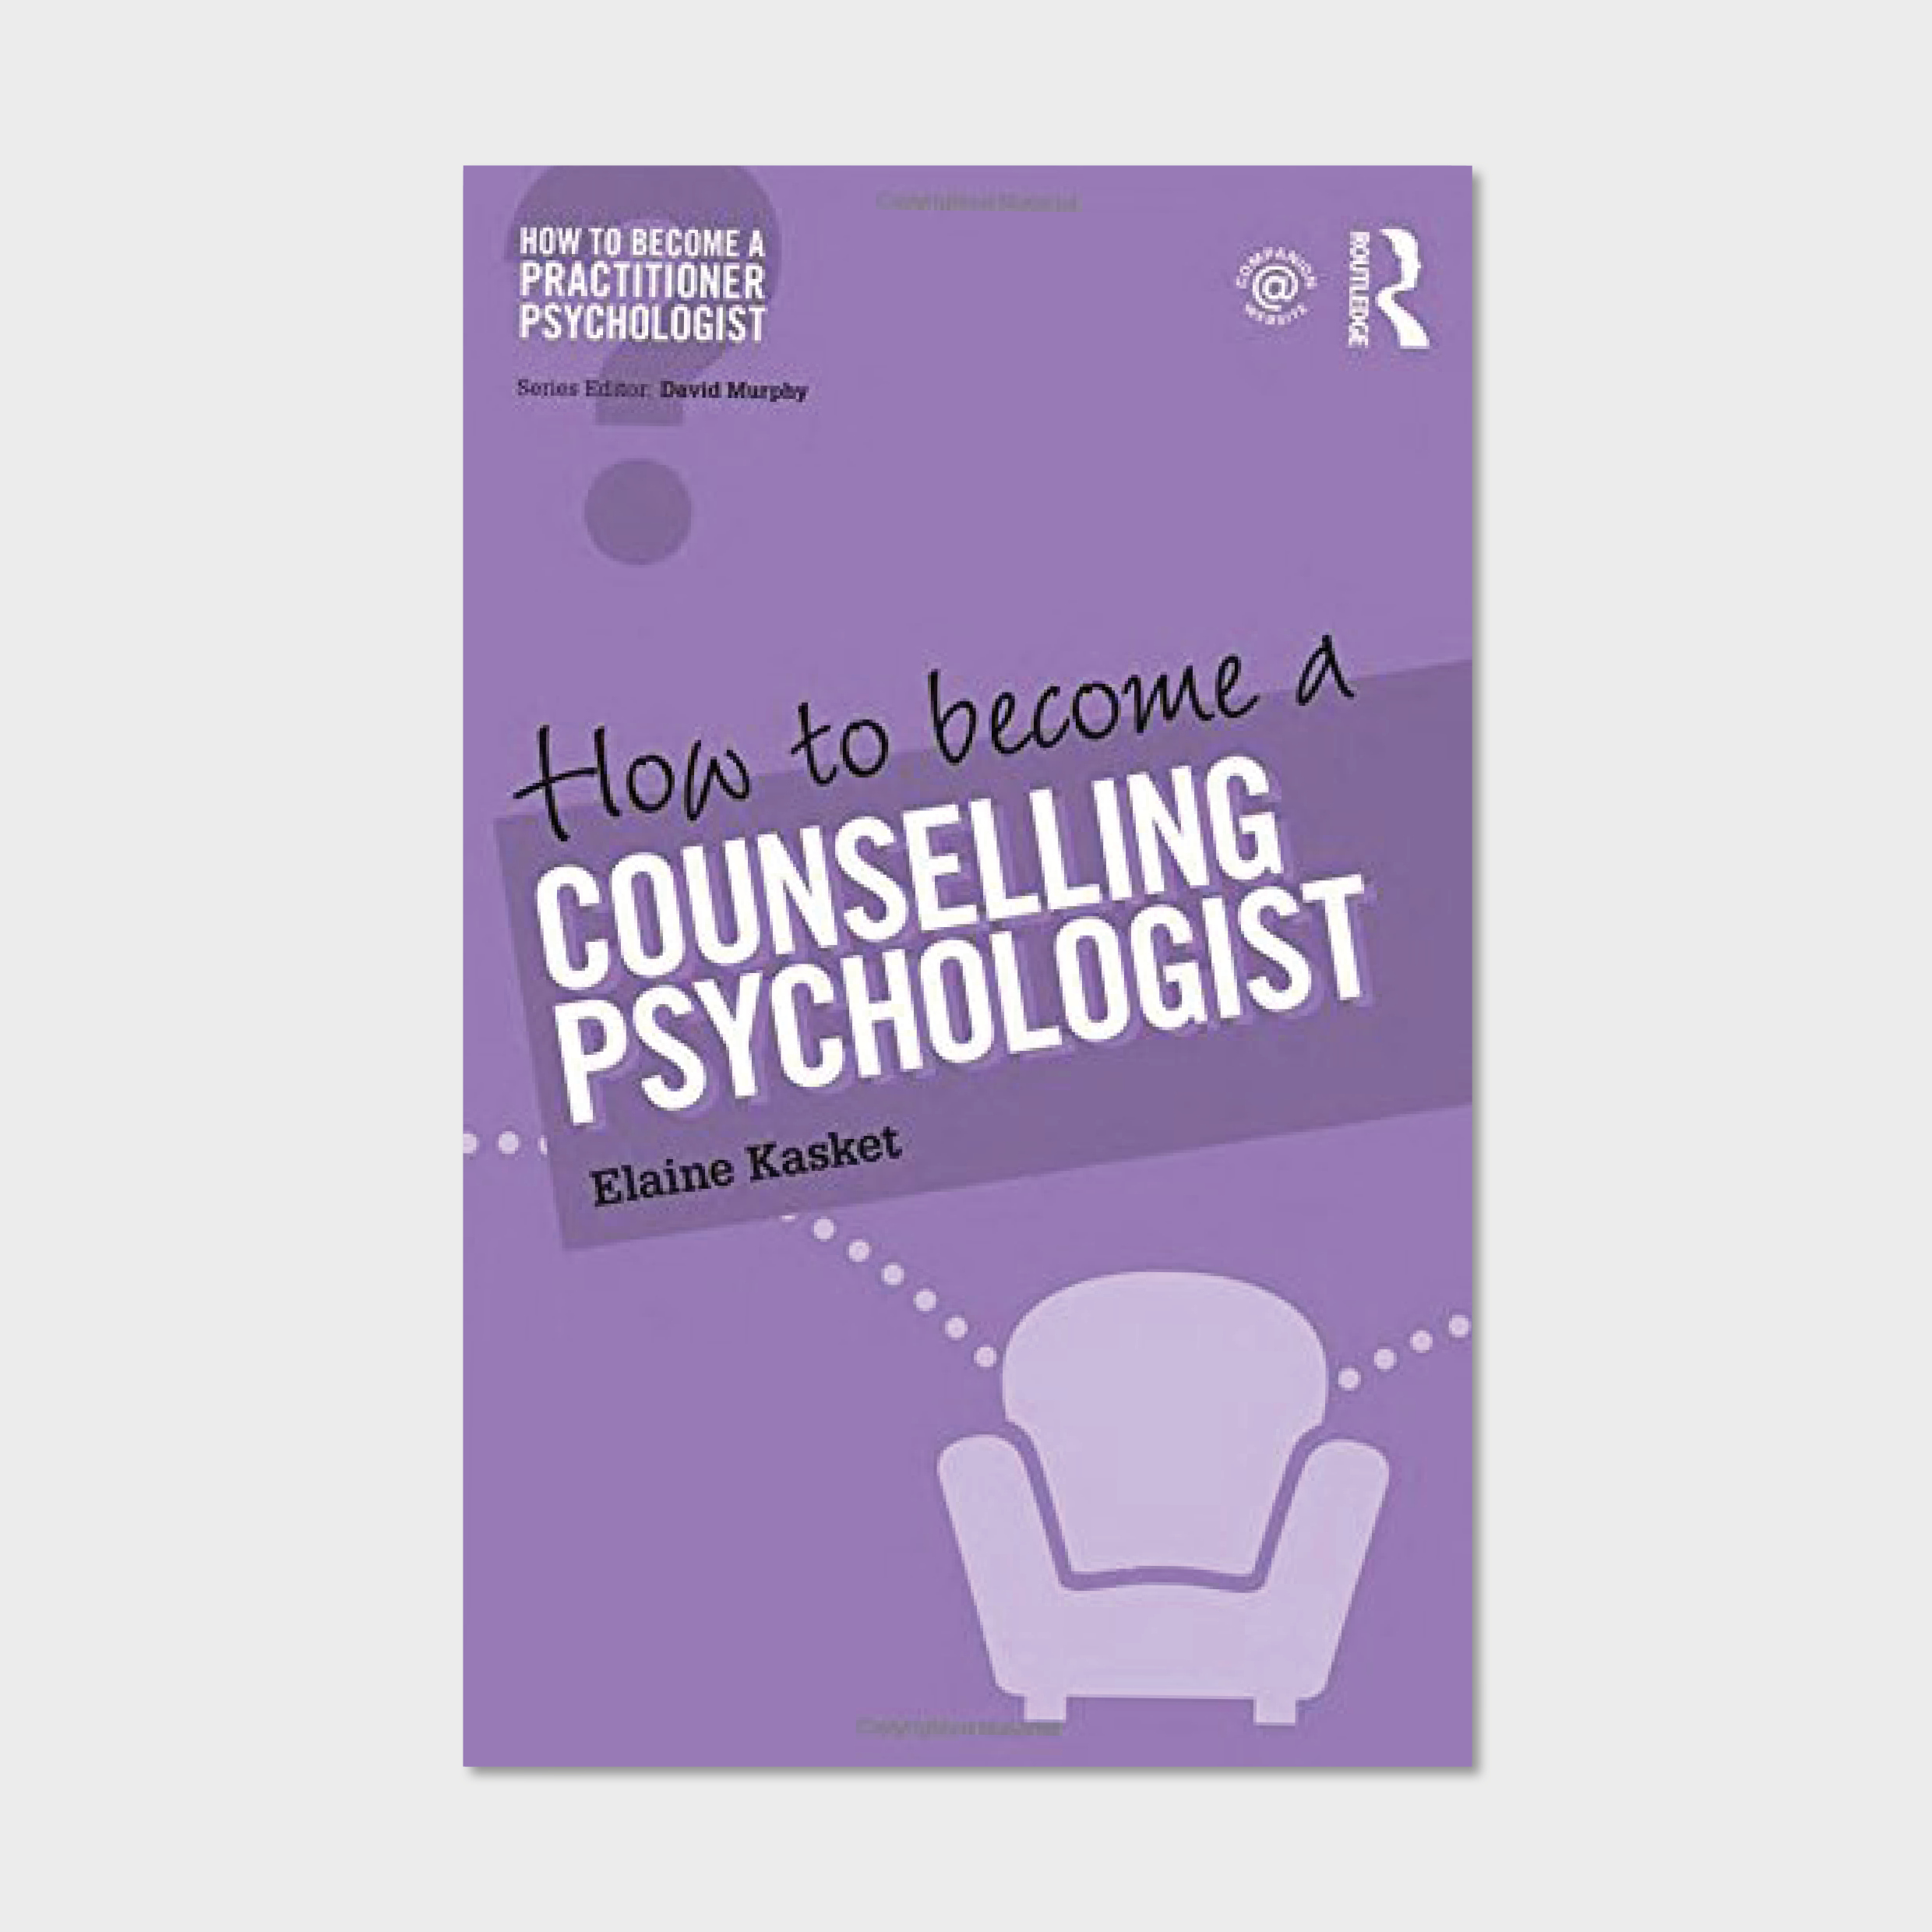 How to Become a Counselling Psychologist   Read more